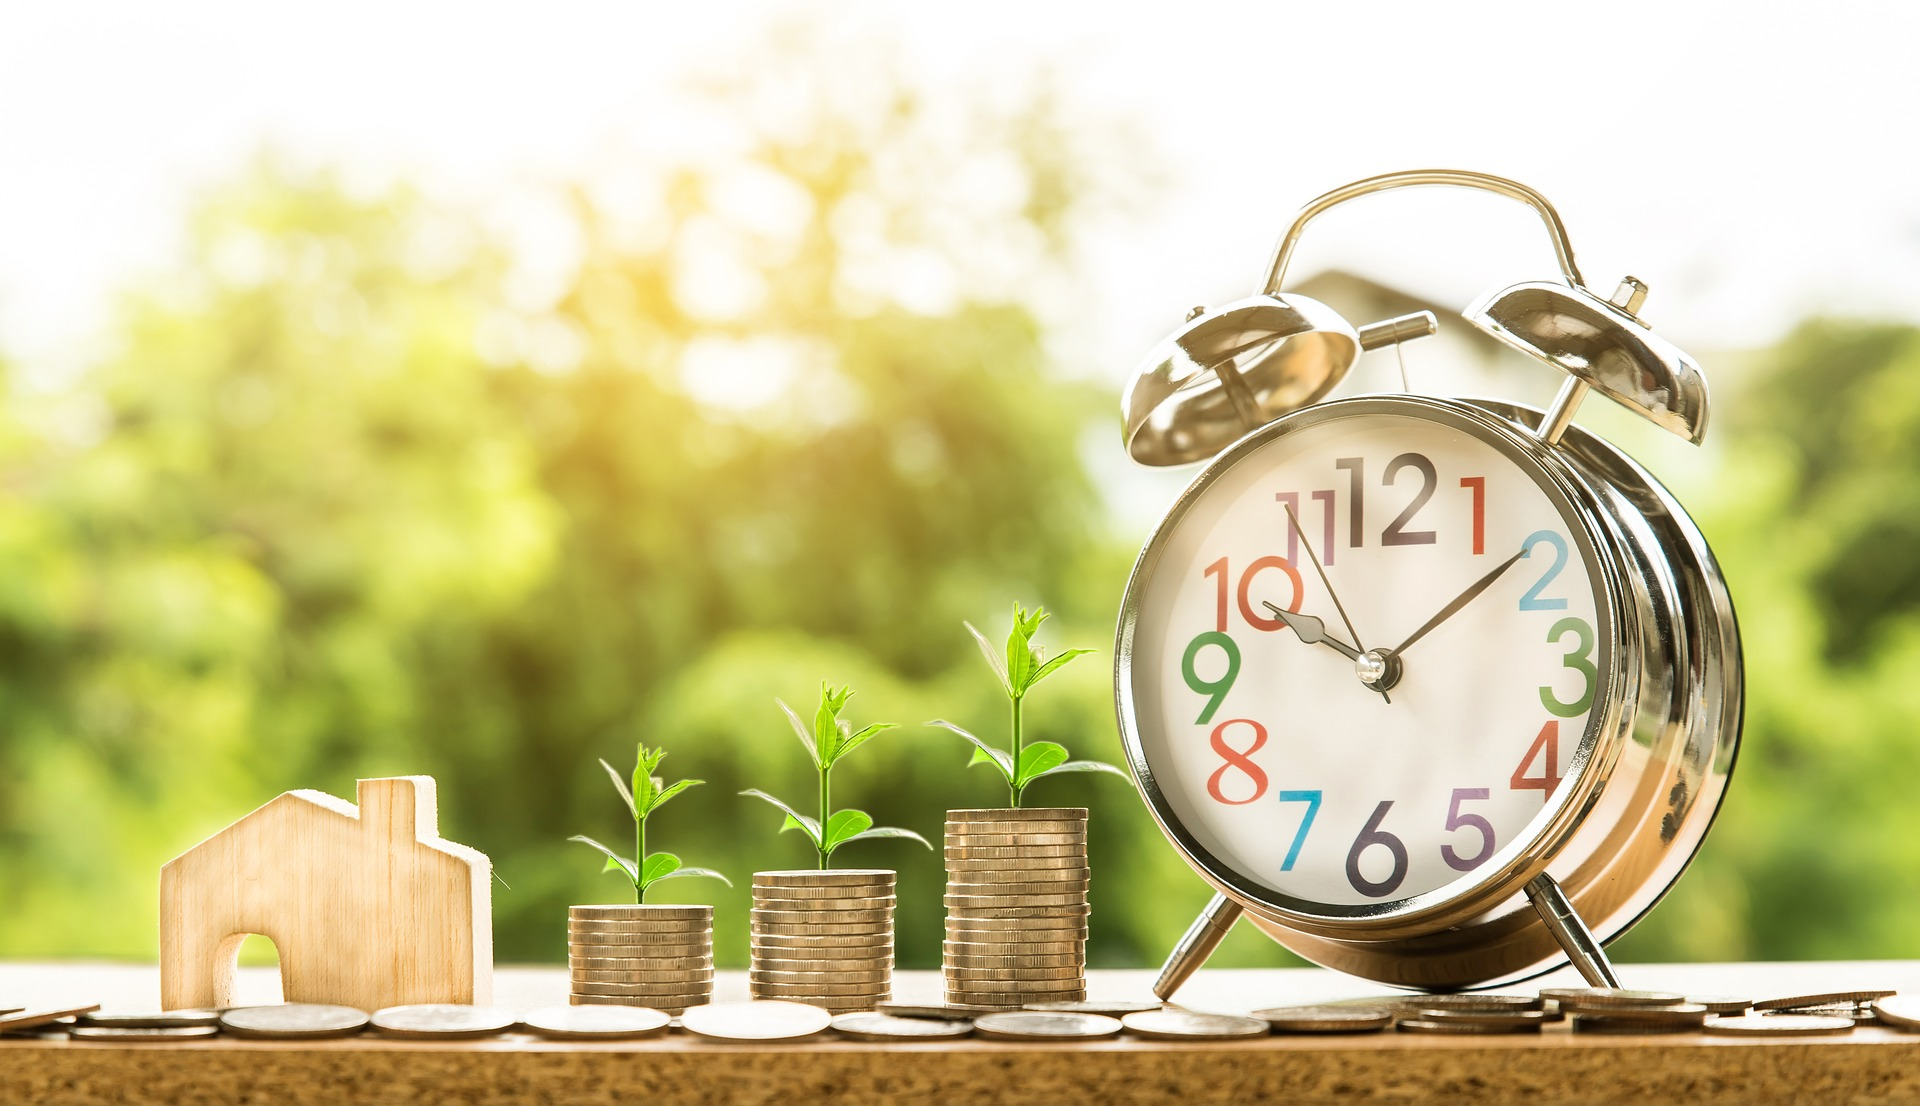 Image of clock, home and money to show growth